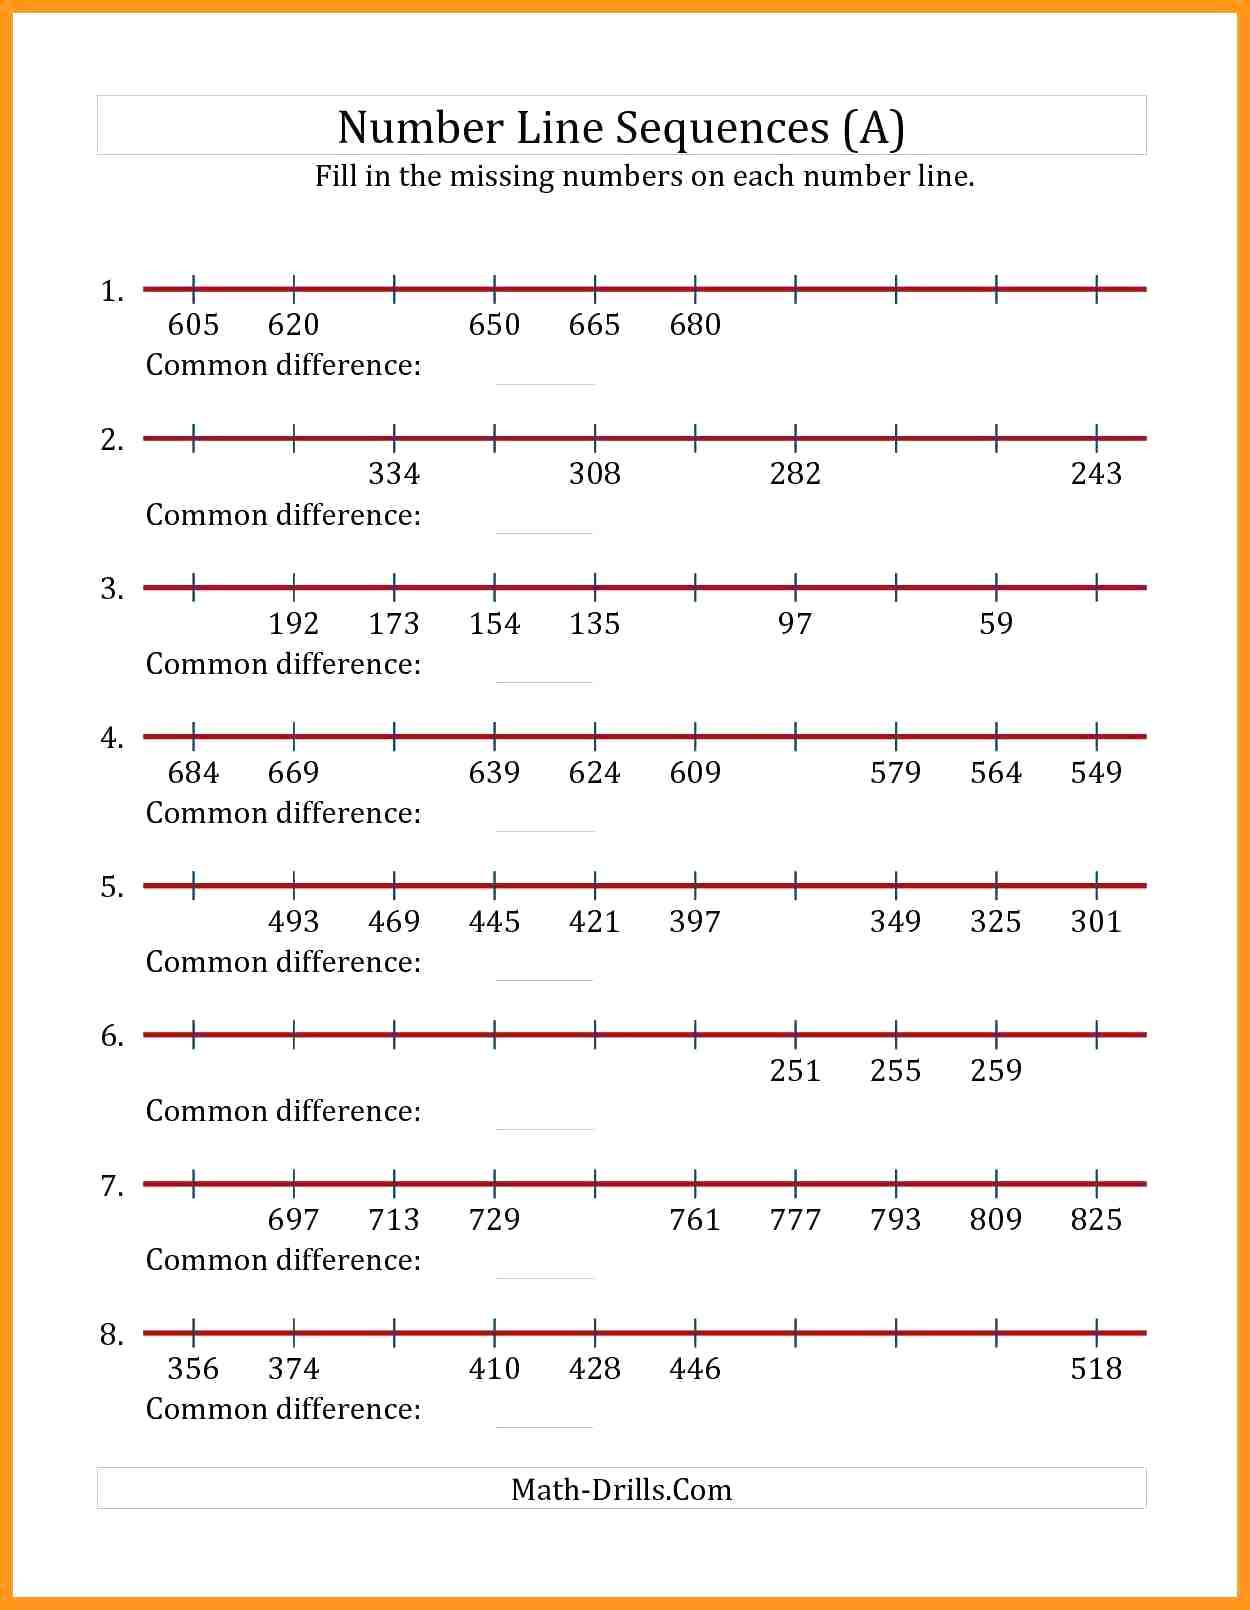 Number Lines Worksheets 3rd Grade Mixed Numbers A Number Line Worksheet Fractions and Mixed